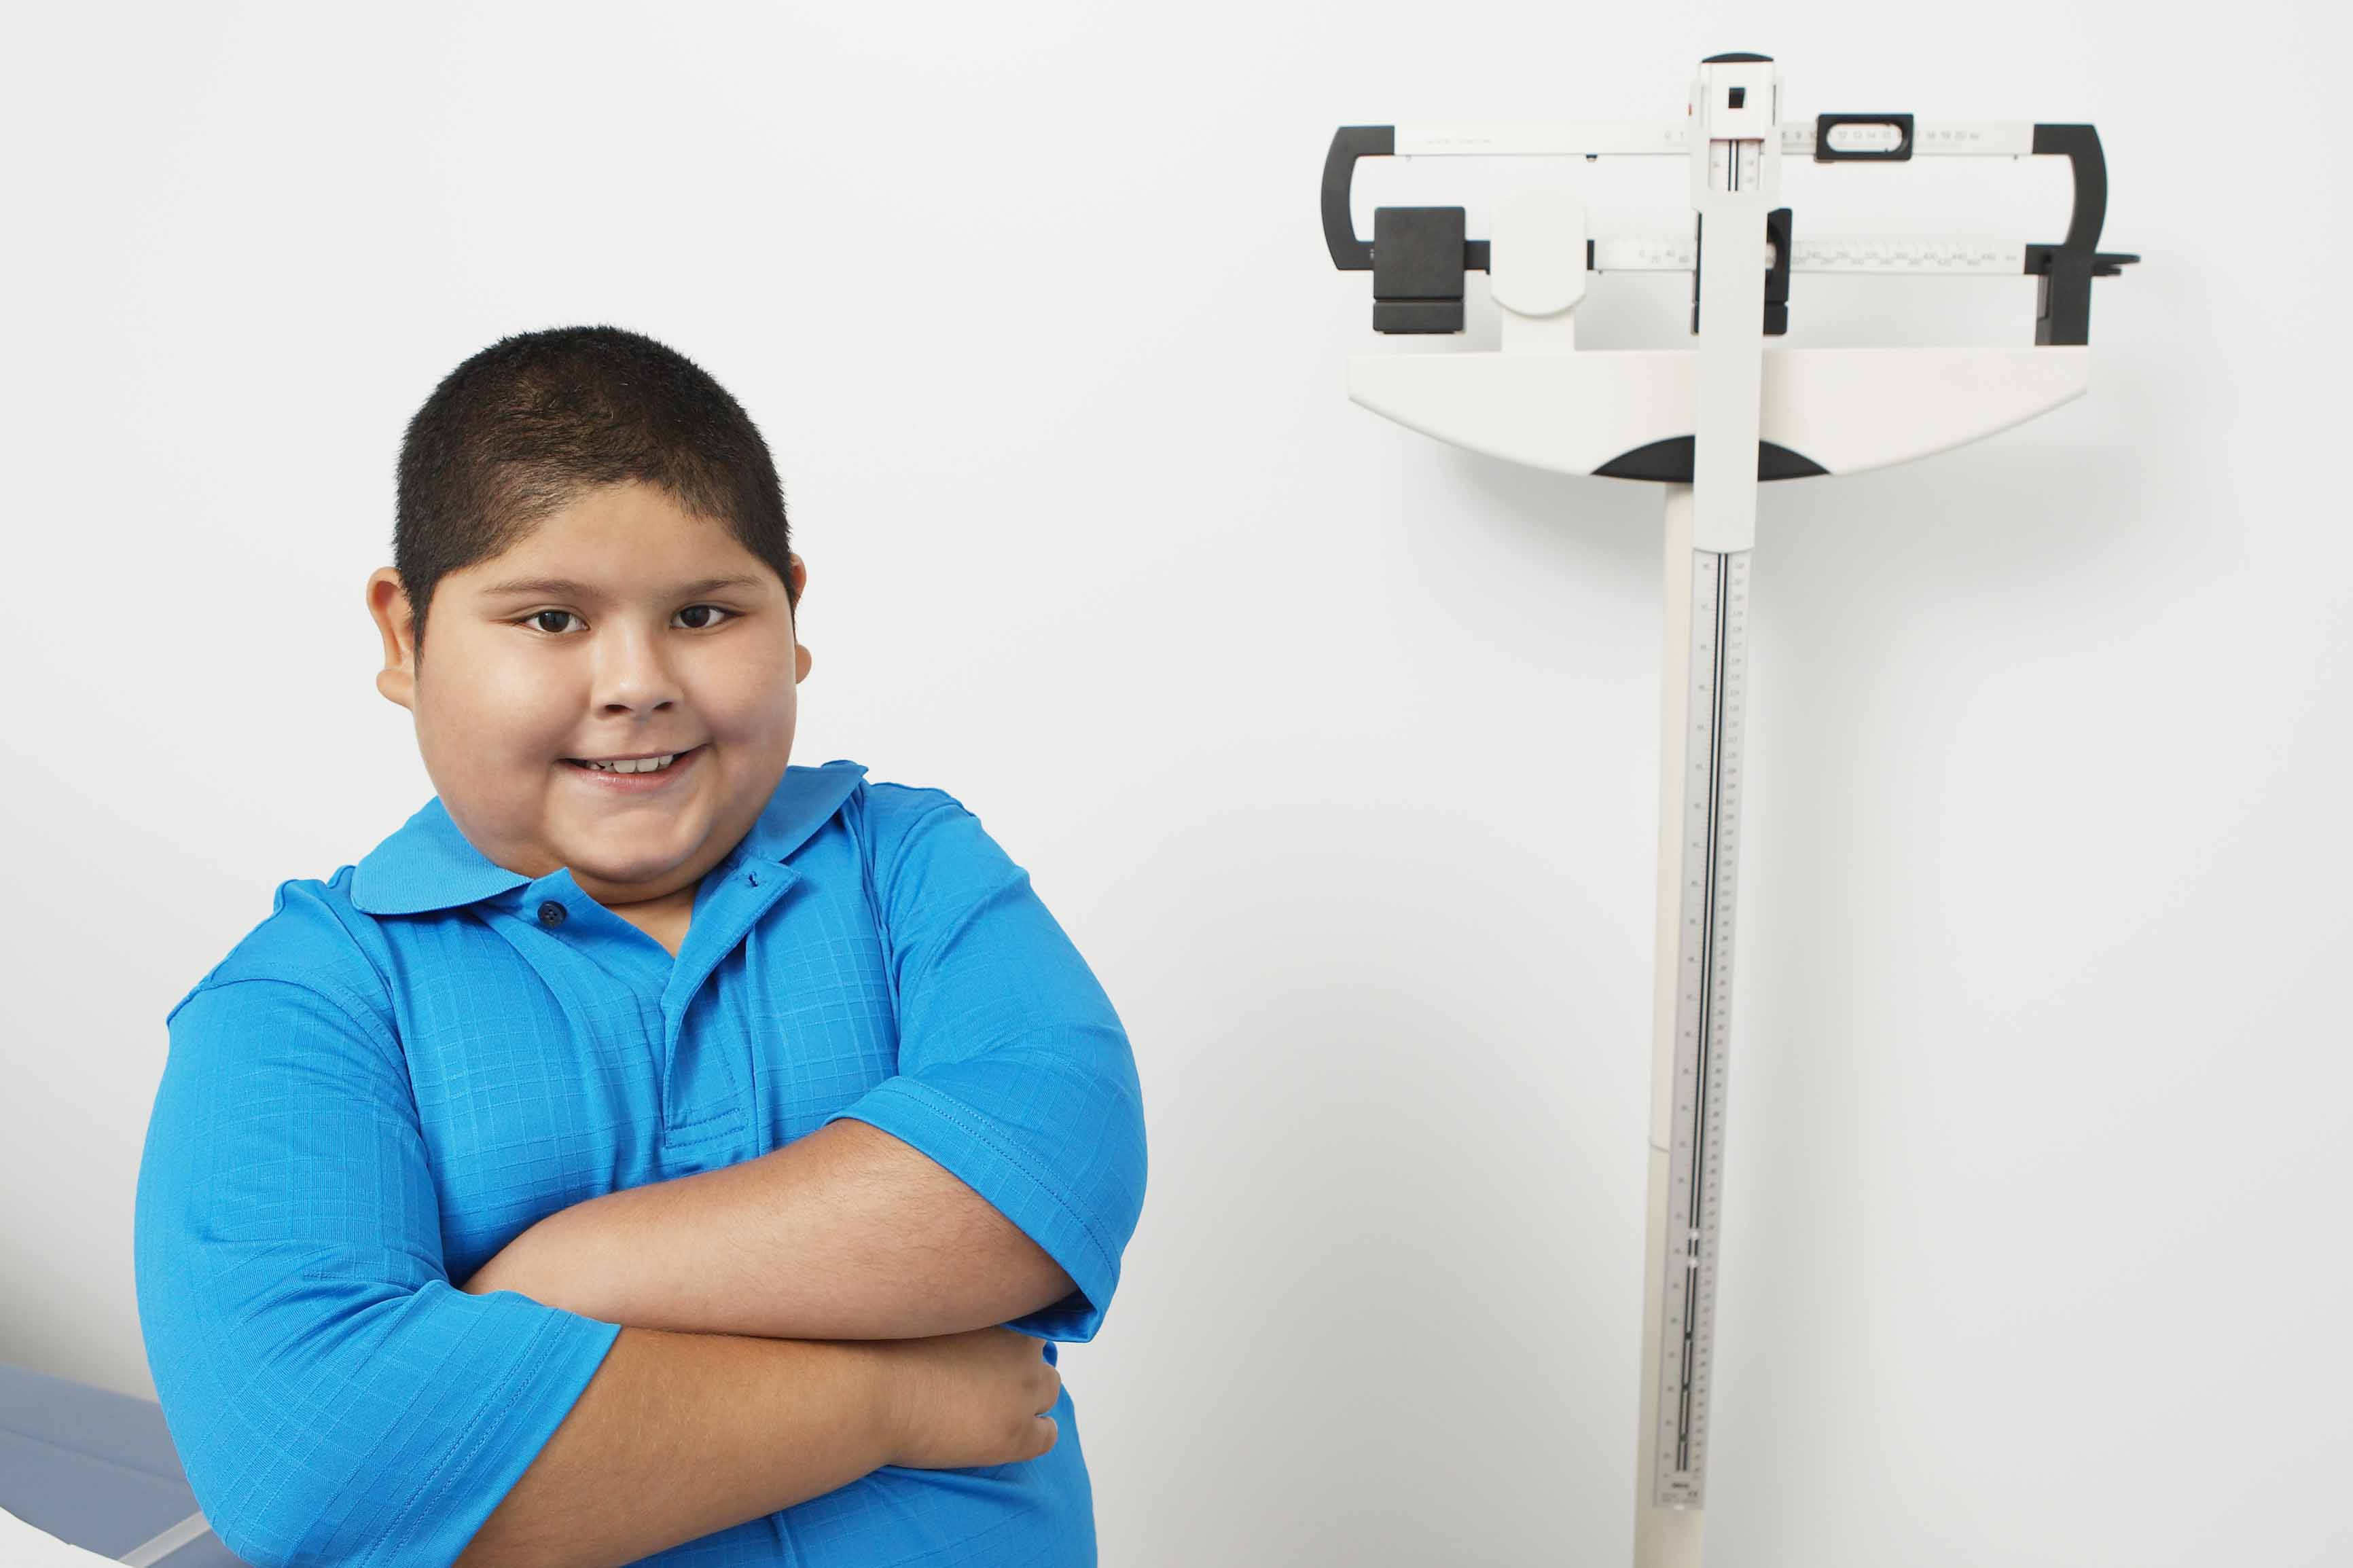 Pediatric - Childhood Obesity